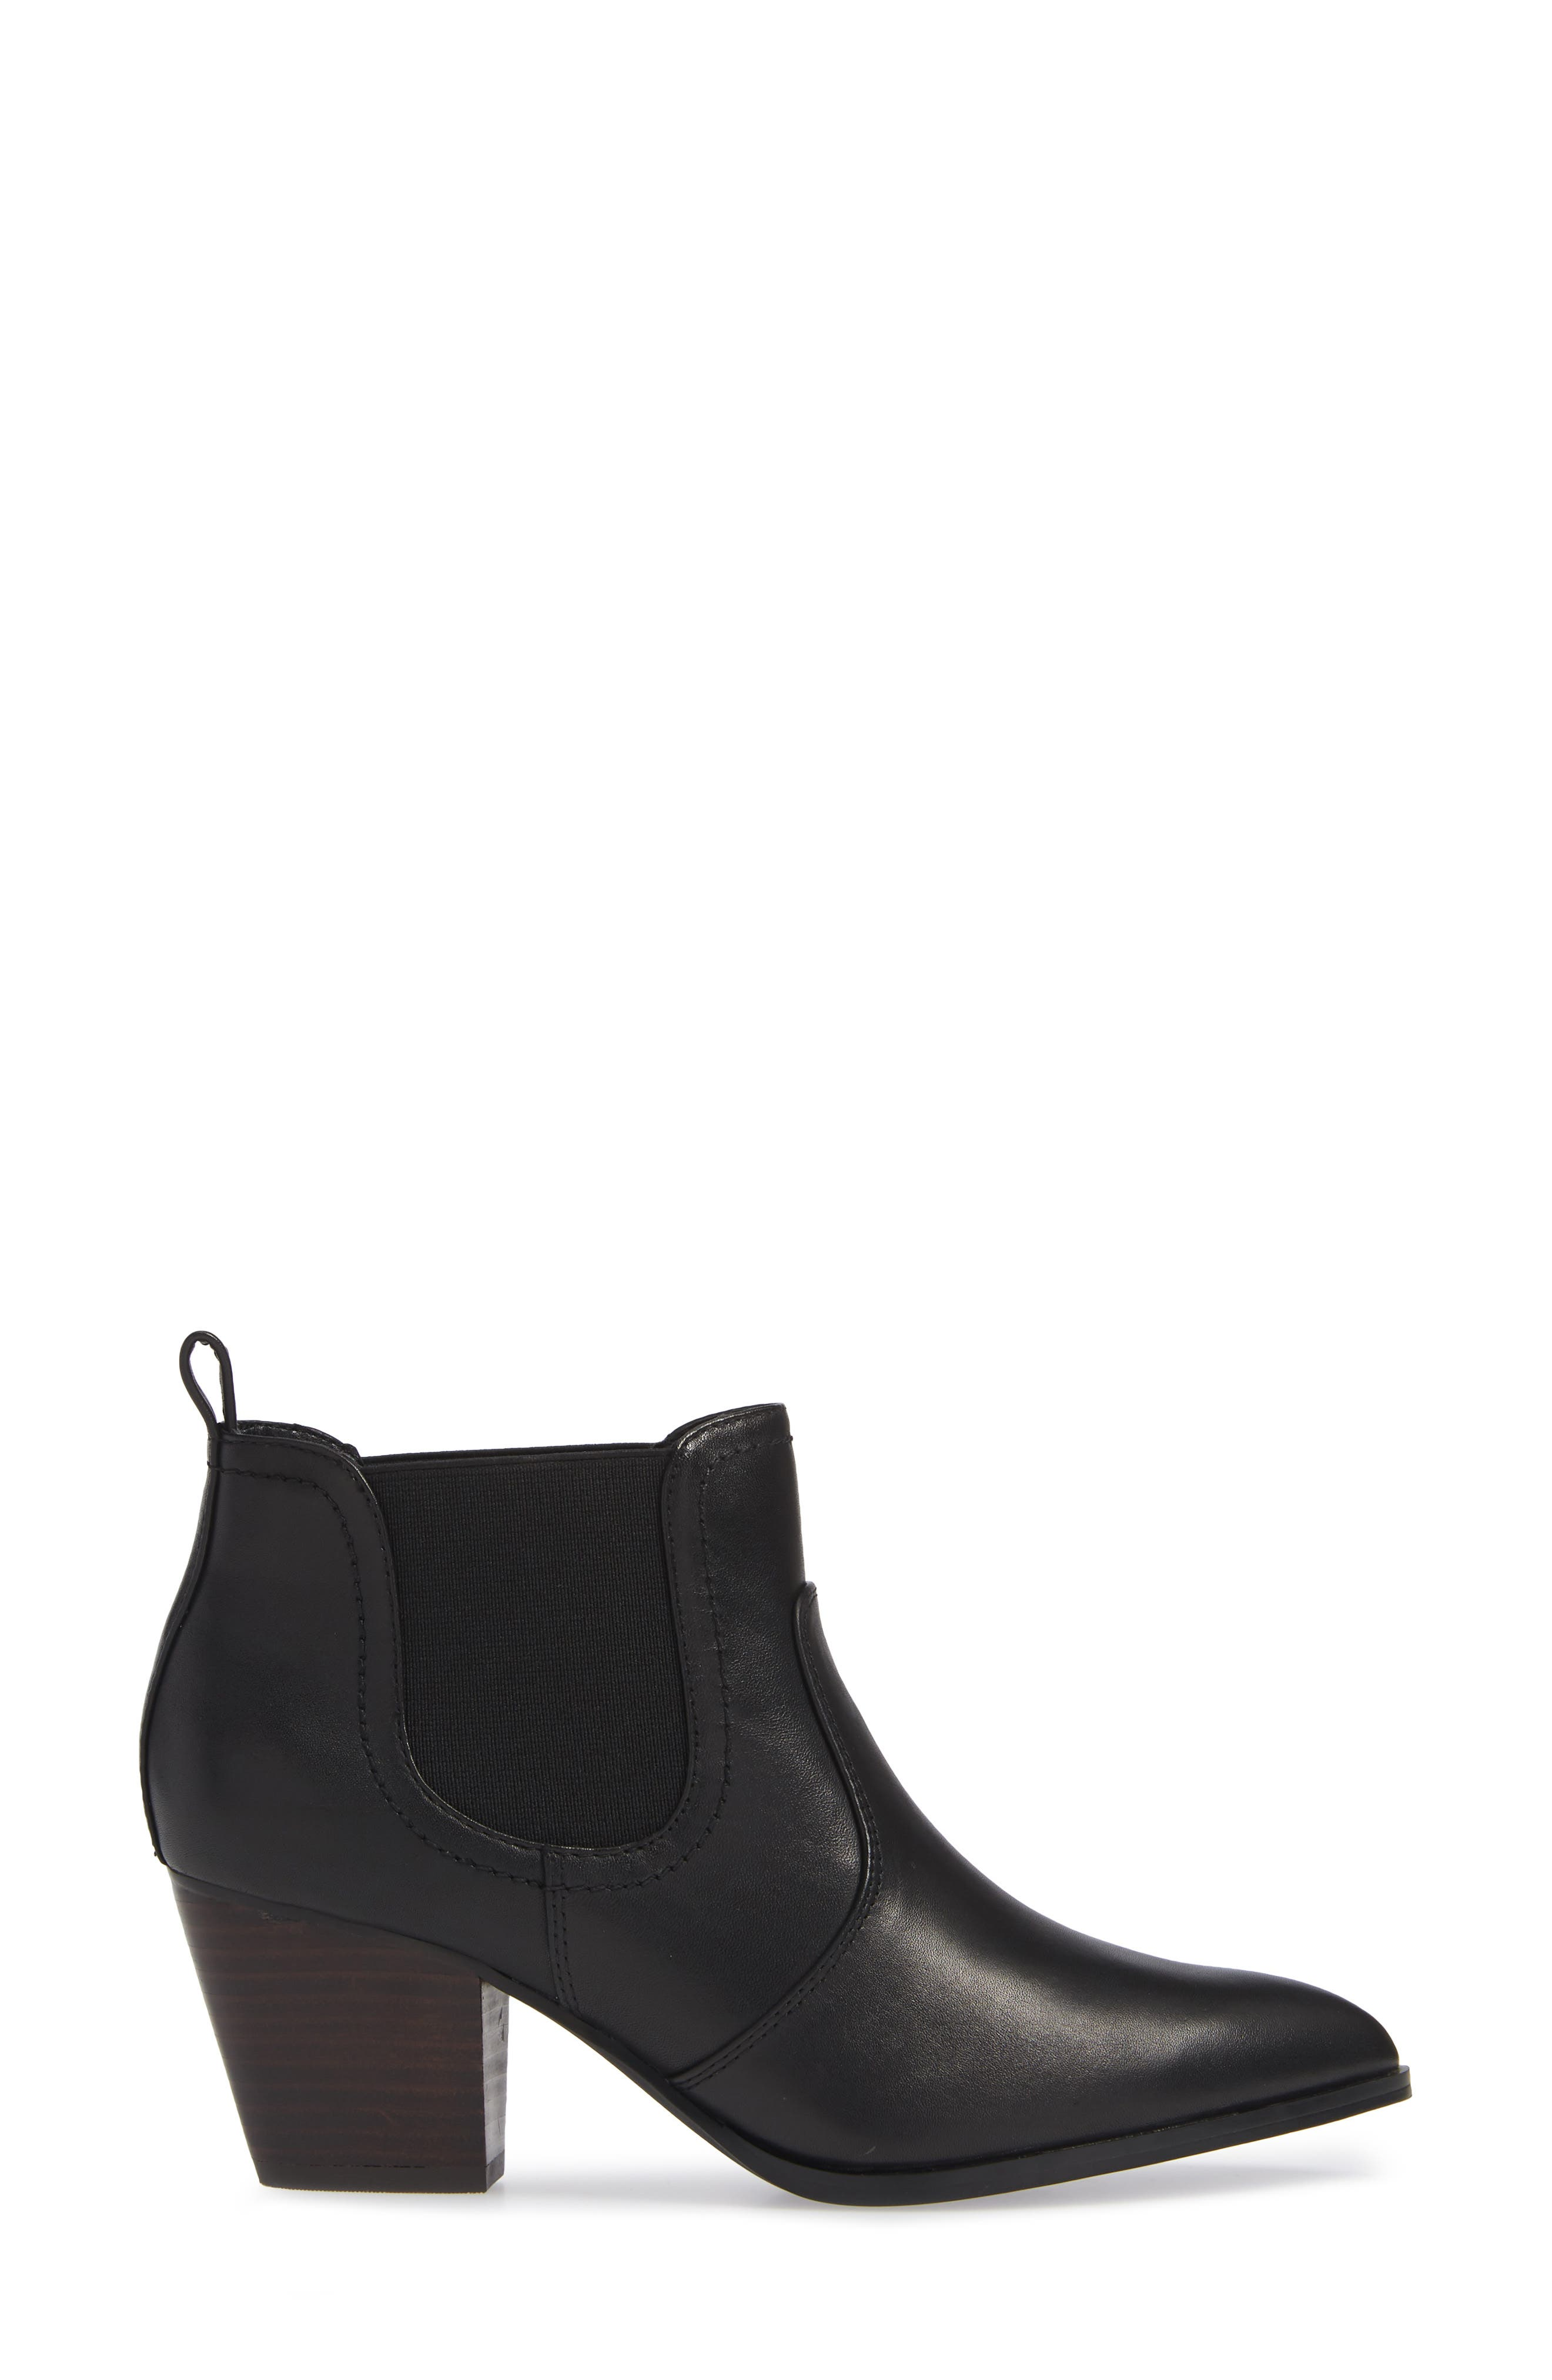 BELLA VITA, Emerson Chelsea Bootie, Alternate thumbnail 3, color, BLACK LEATHER